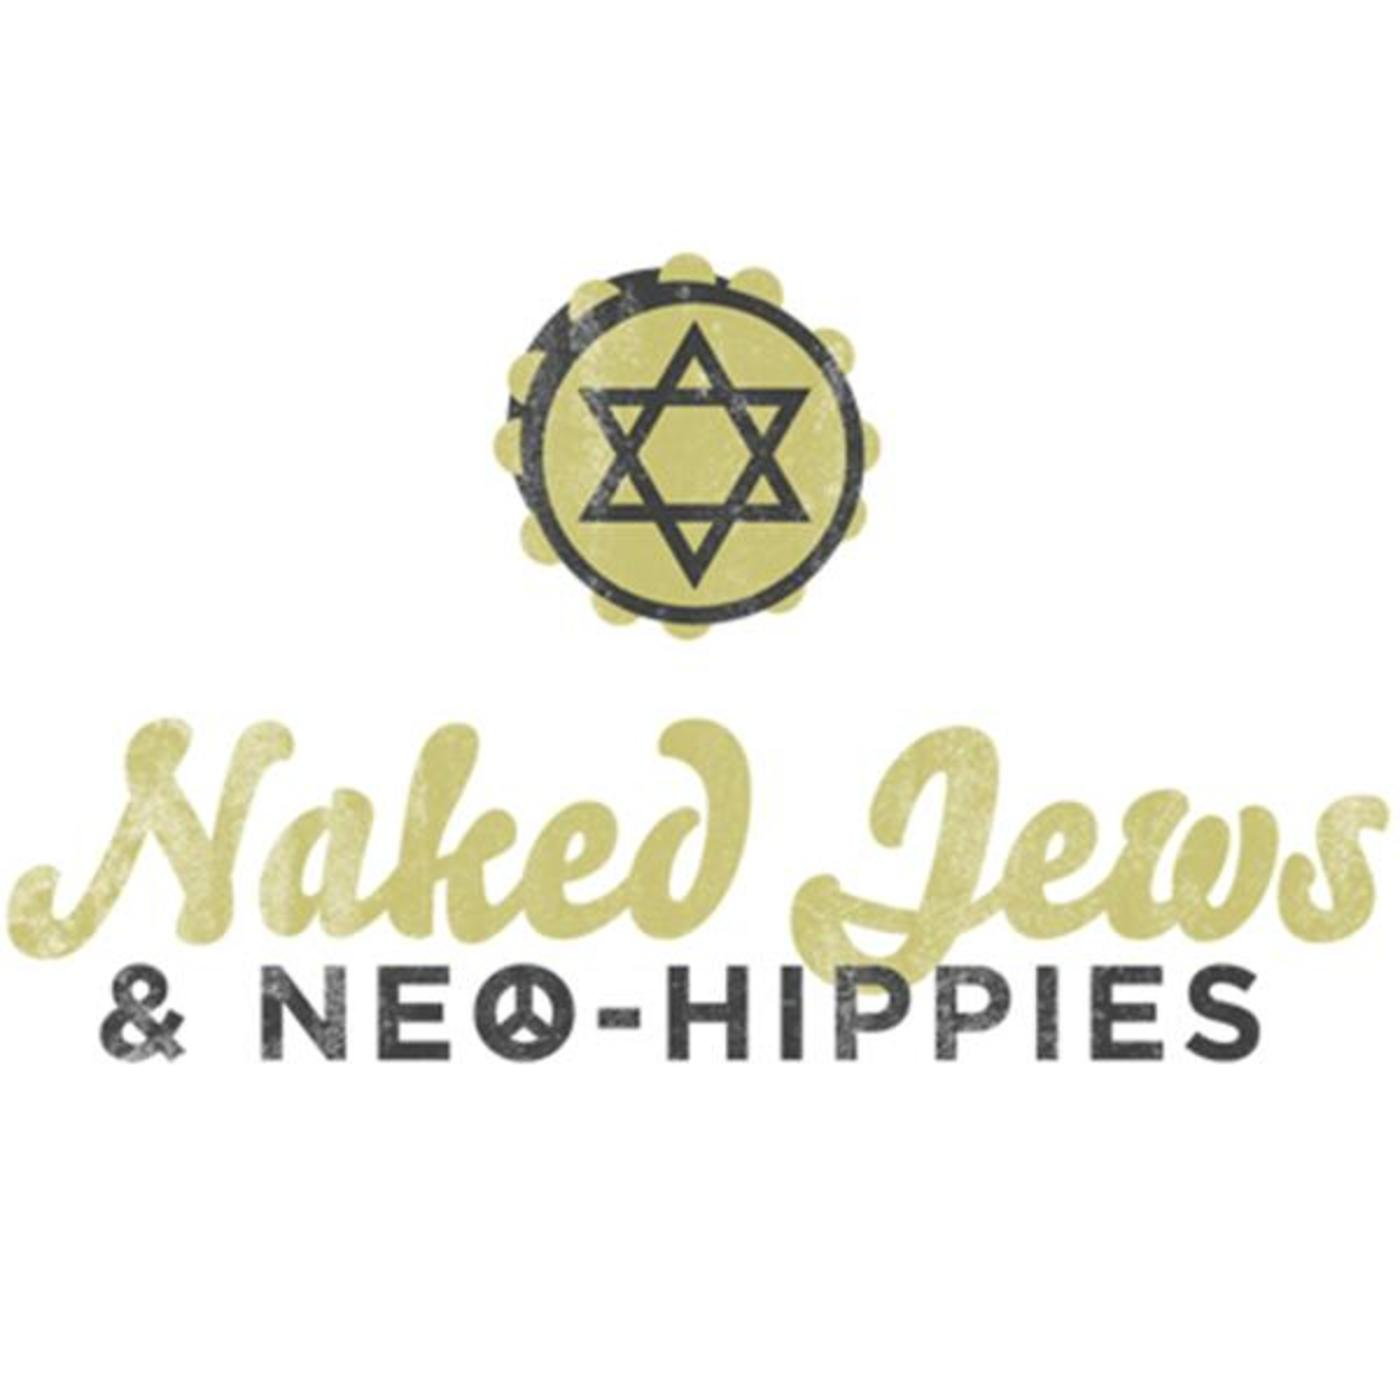 Naked Jews and Neo-Hippies